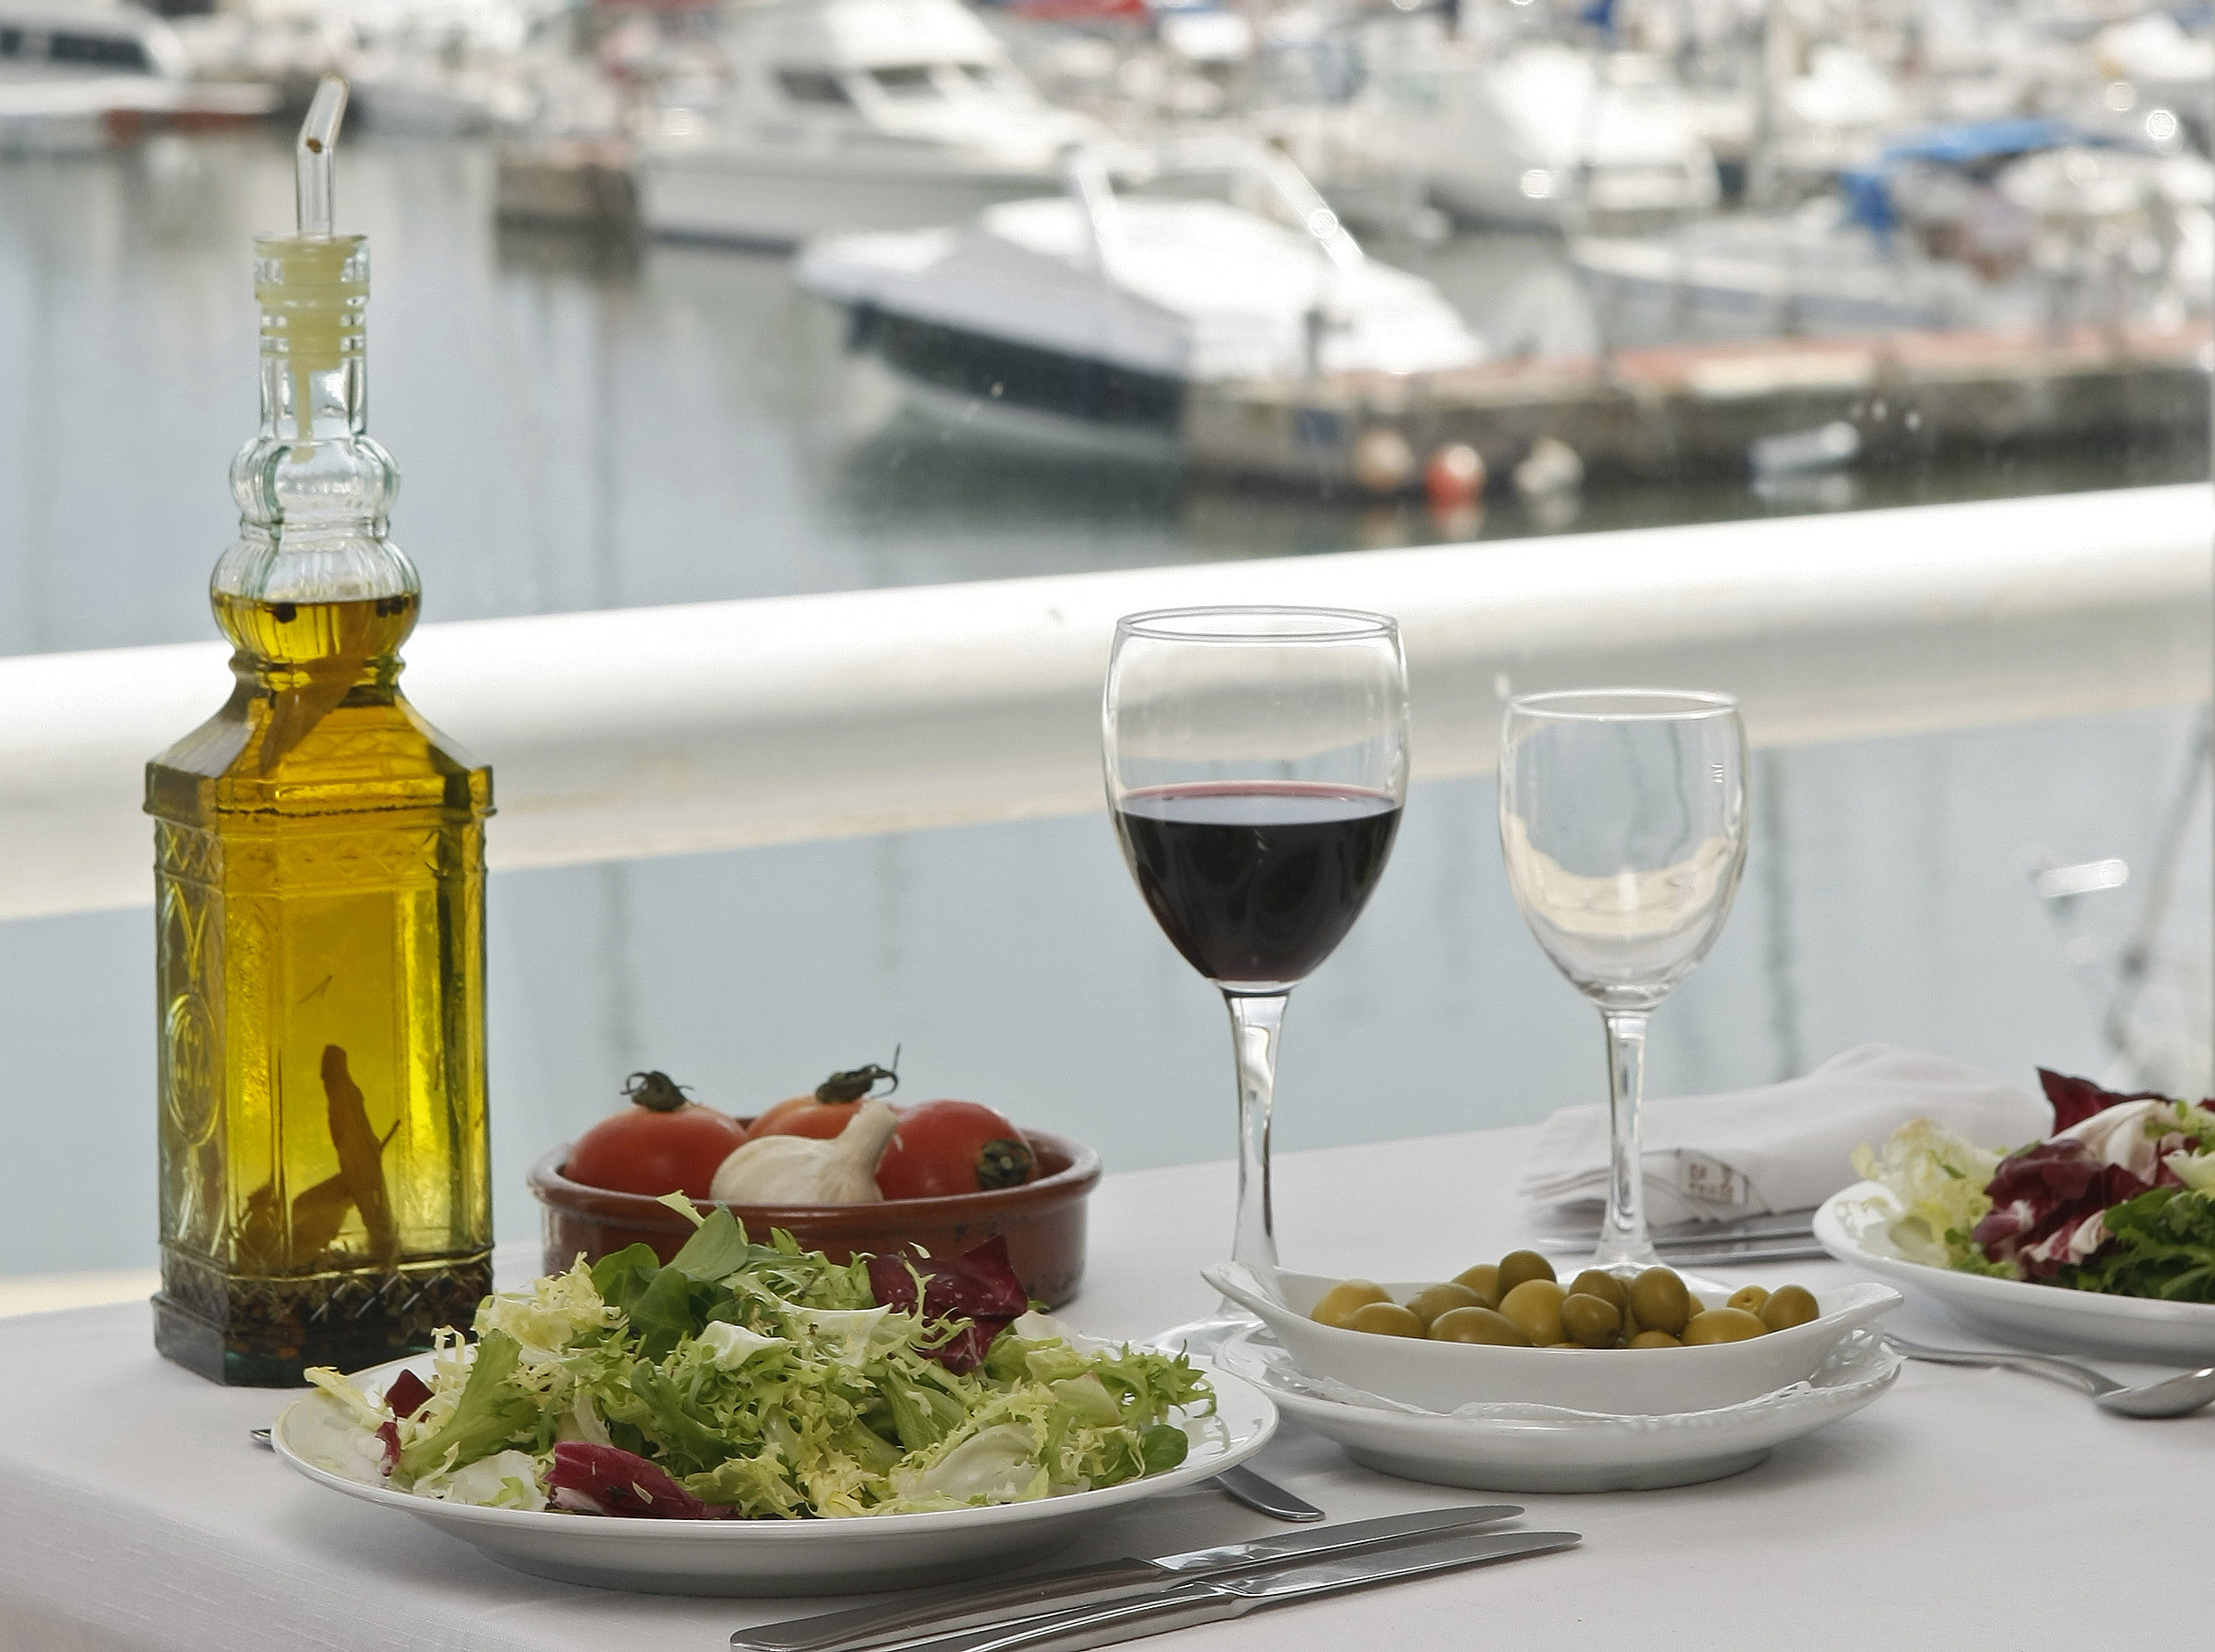 Mediterranean diet works by adding up small improvements